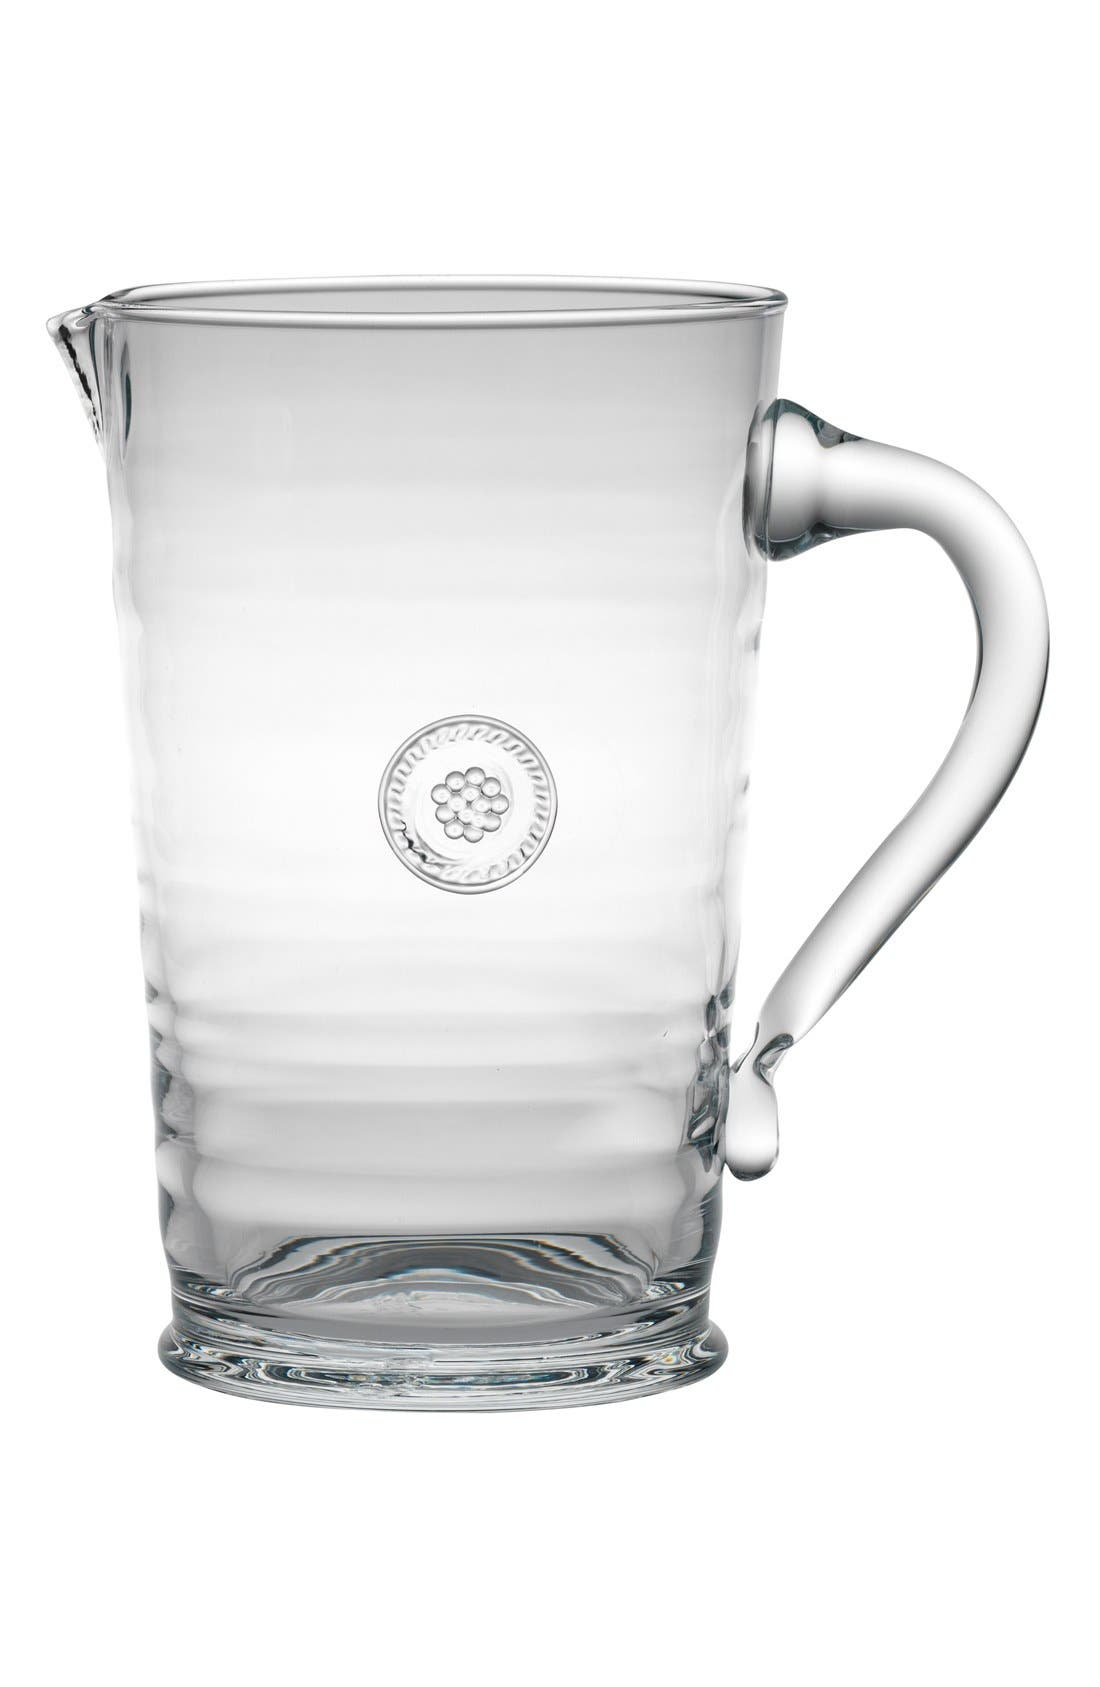 Berry & Thread Glass Pitcher,                         Main,                         color, CLEAR